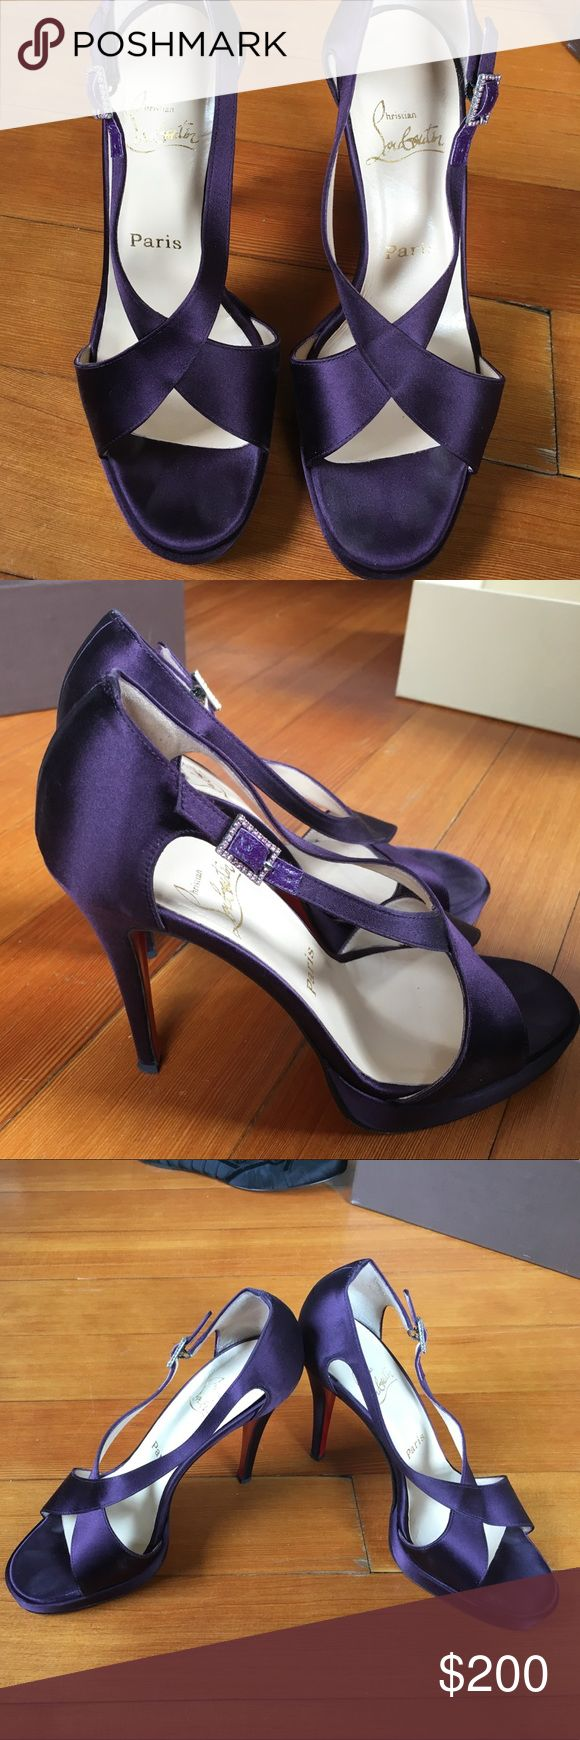 Christian Louboutin purple silk strappy heels Christian Louboutin purple strappy high heel sandals with slight platform. Size 38 1/2 worn rarely. Christian Louboutin Shoes Heels